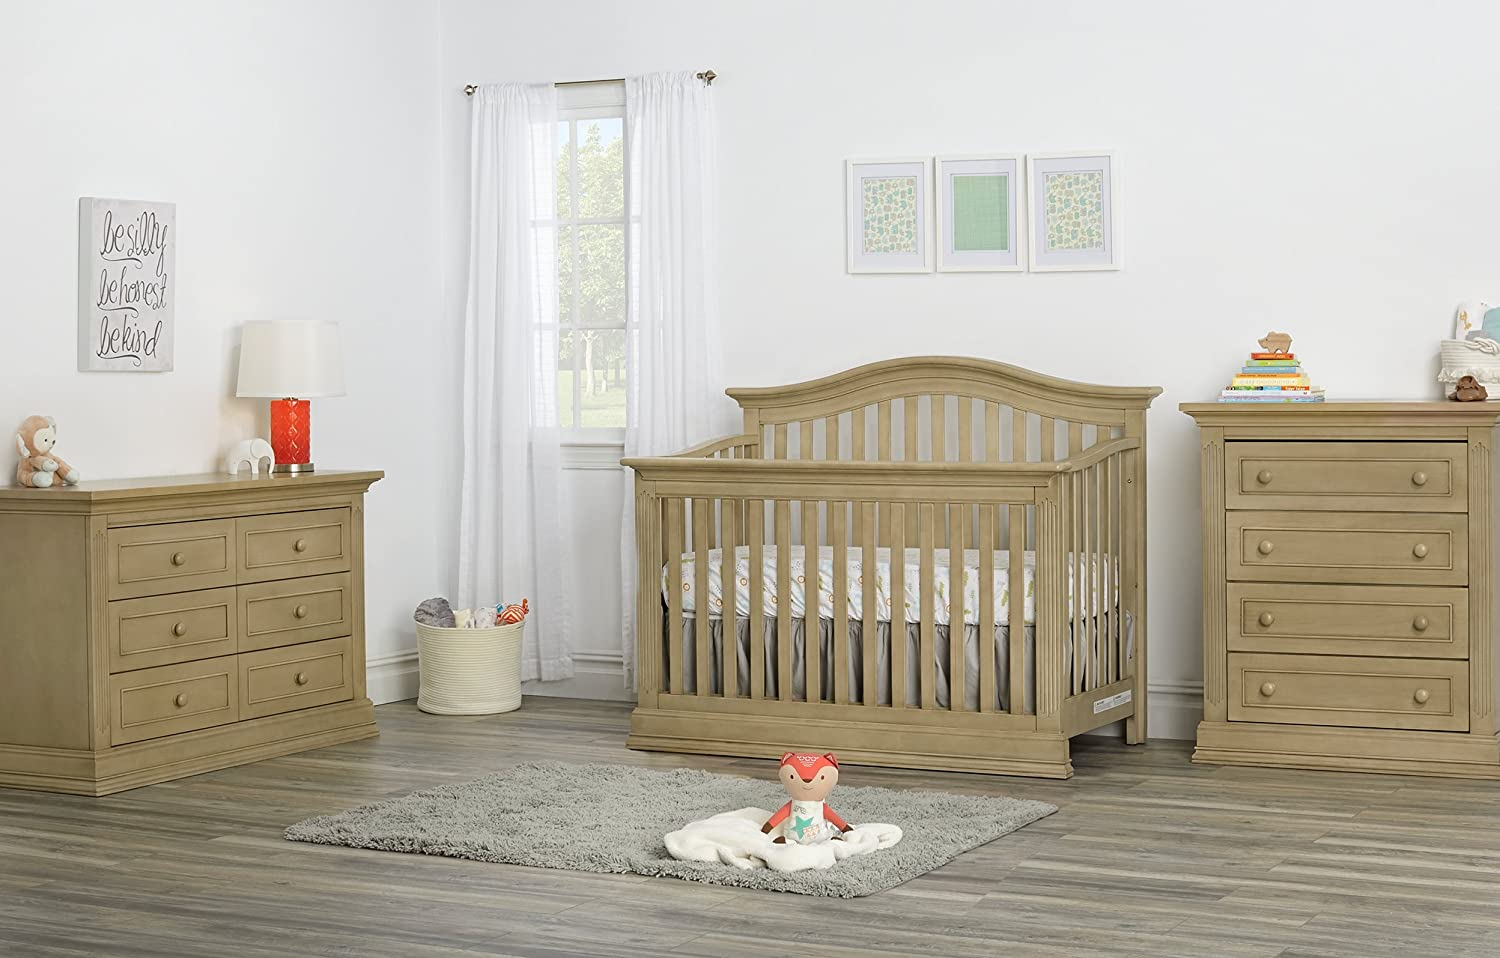 Amazon.com: Suite Bebe Dakota 4 cajones, Driftwood: Baby